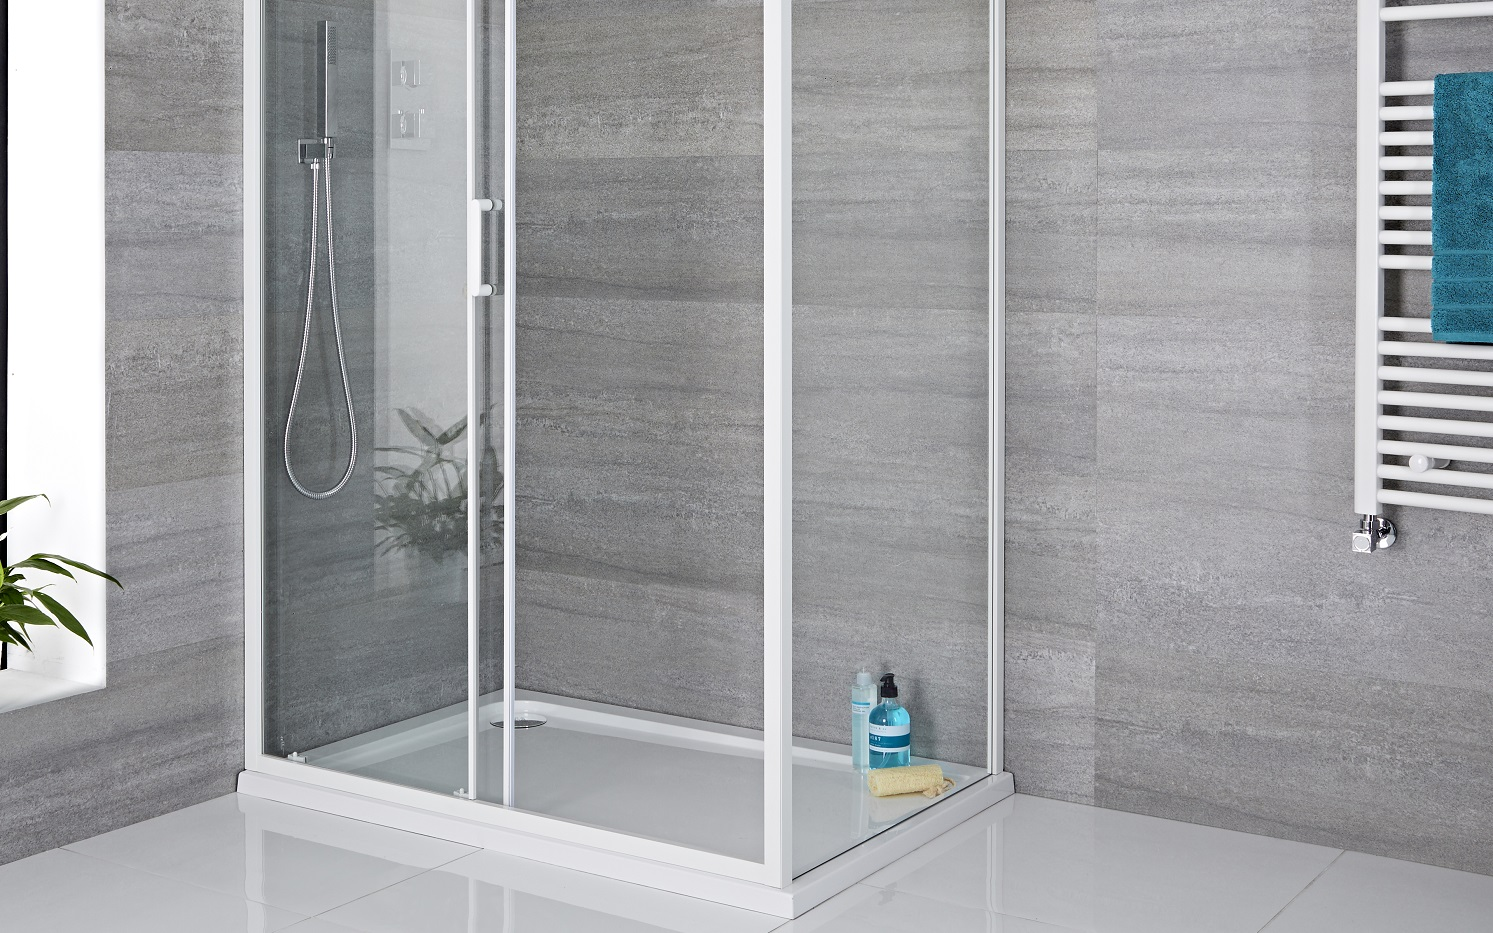 seal doors glass door frameless product hinged shower